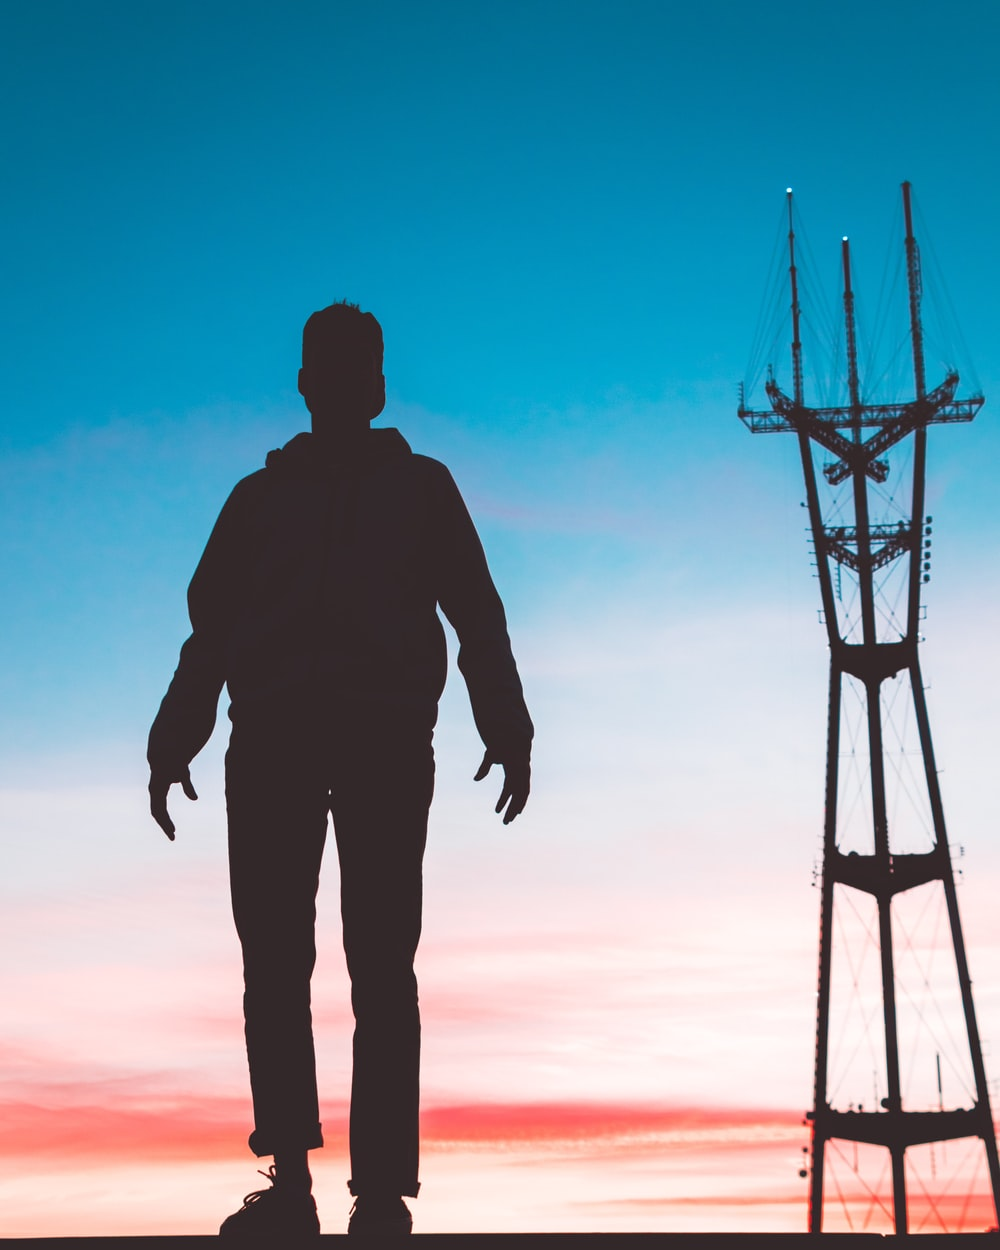 silhouette photography of man standing in front of transmission tower